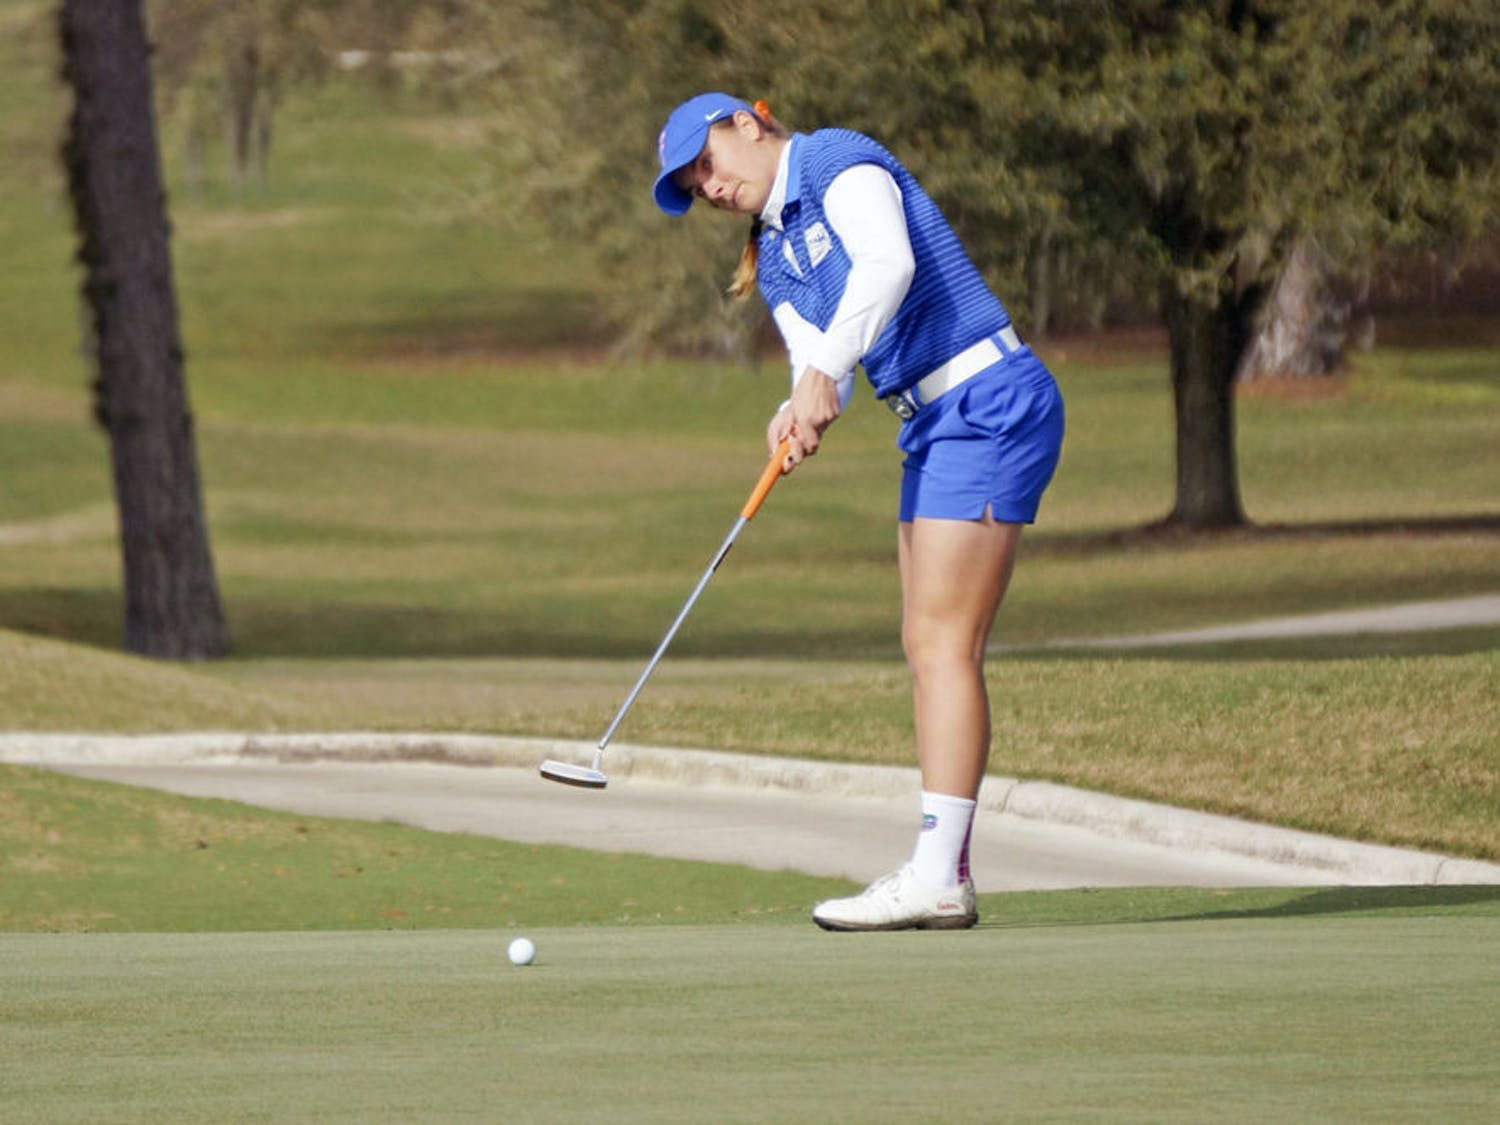 Taylor Tomlinson, the Gators' lone senior on the team, finished the Northrop Grumman Regional Challenge at 9 over par, good for a tie for 23rd.